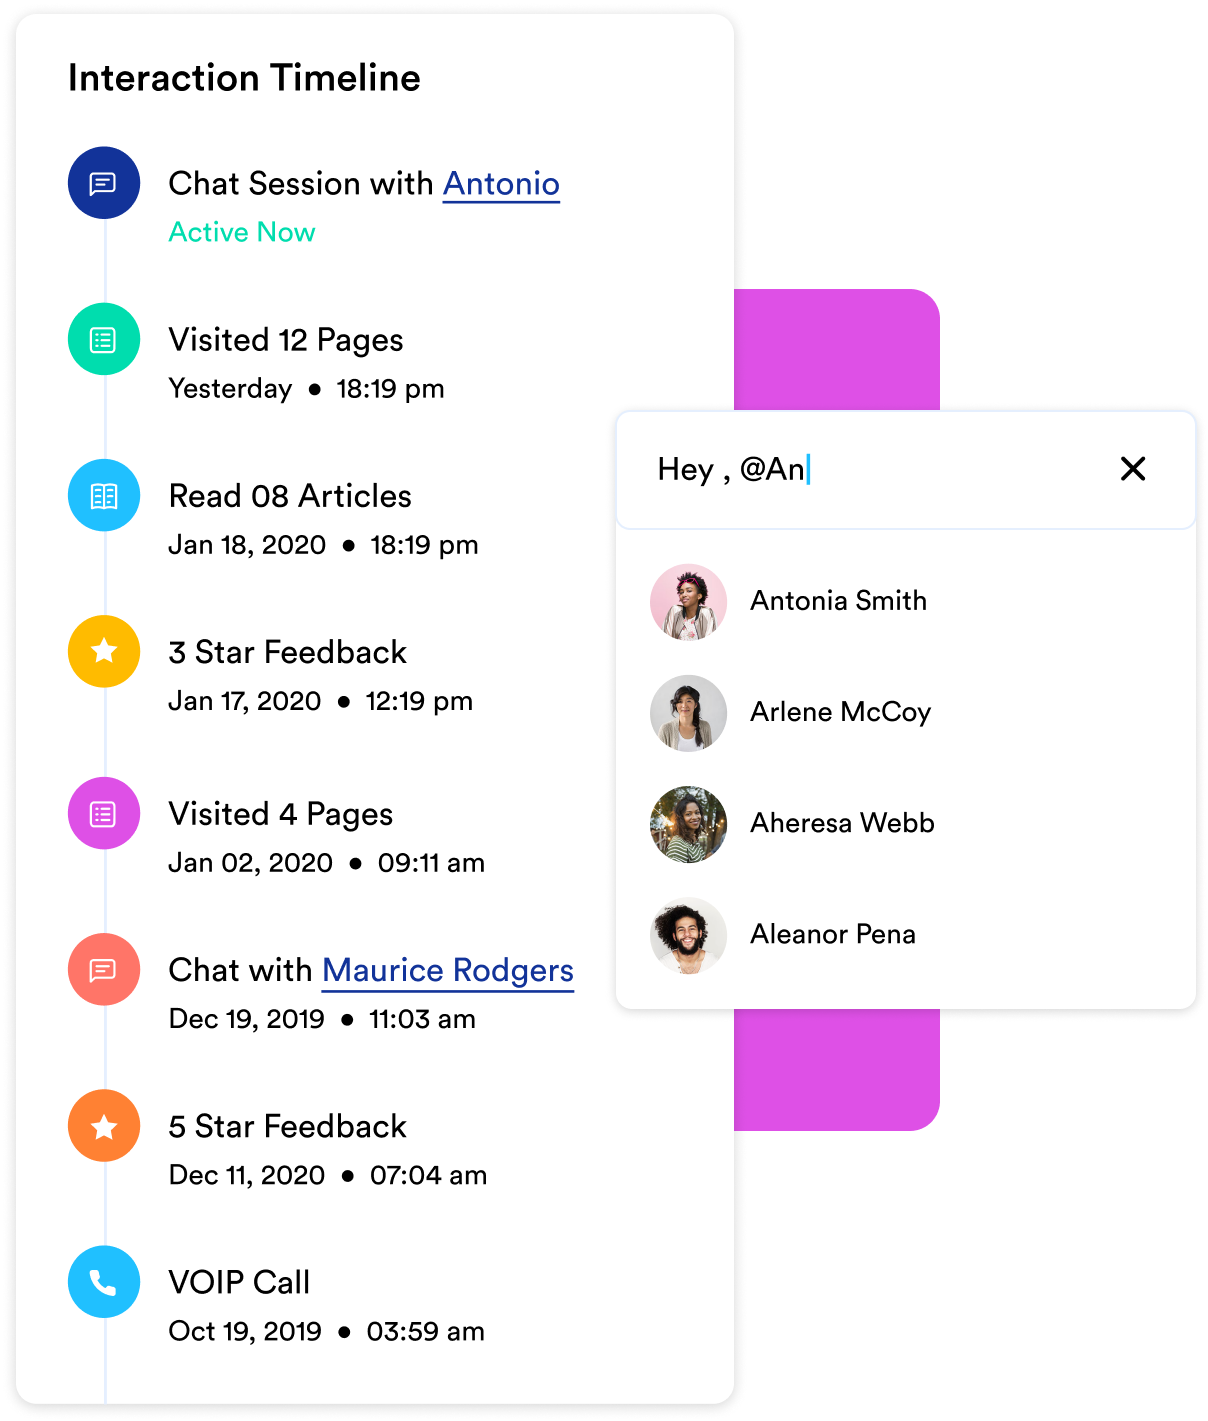 View complete customer history while chatting